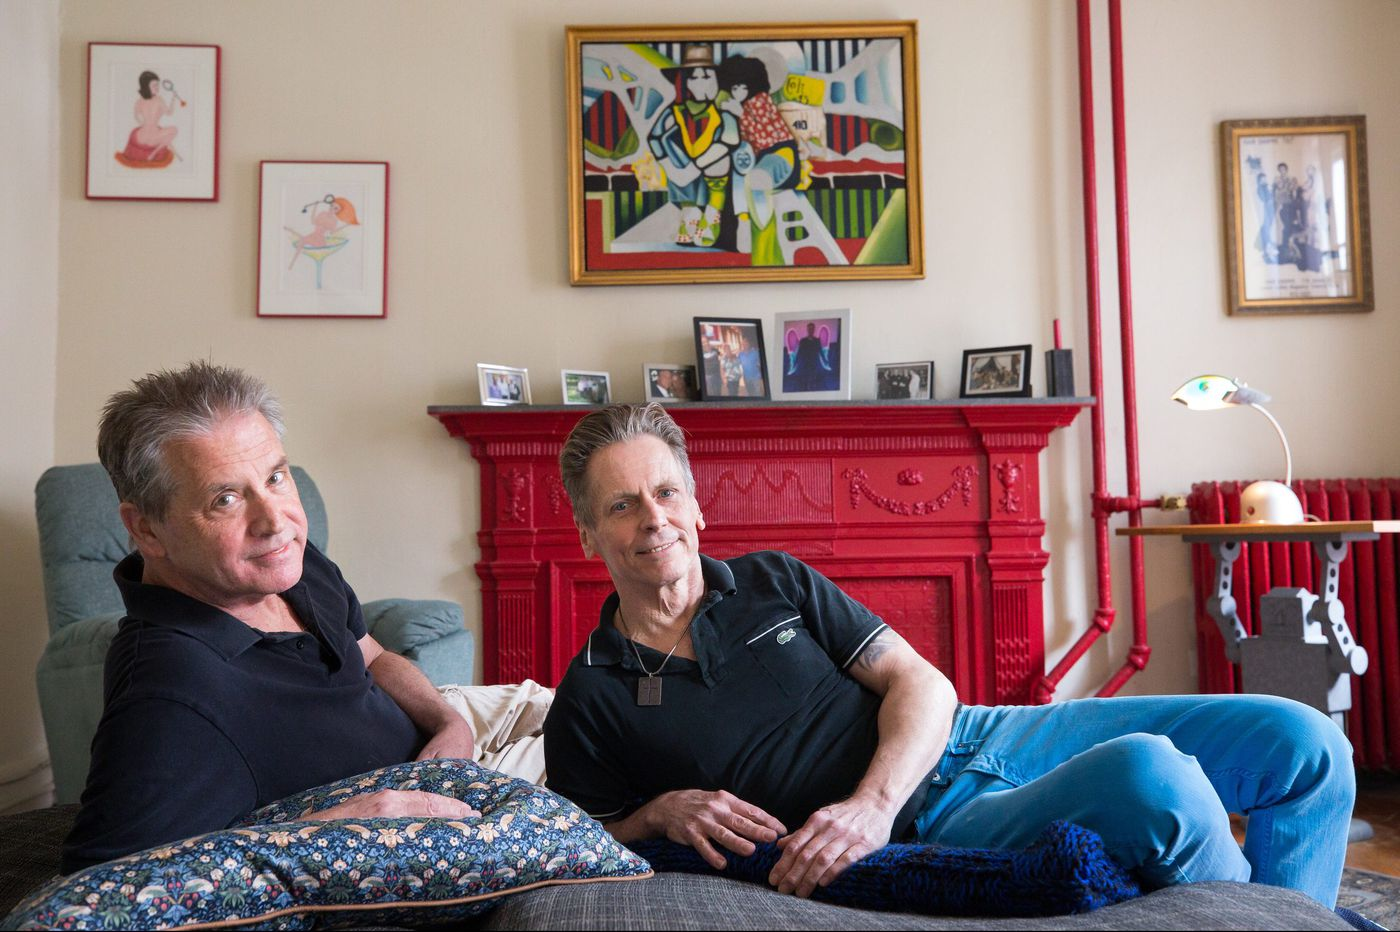 A South Street apartment's journey from eclectic to psychedelic and back again